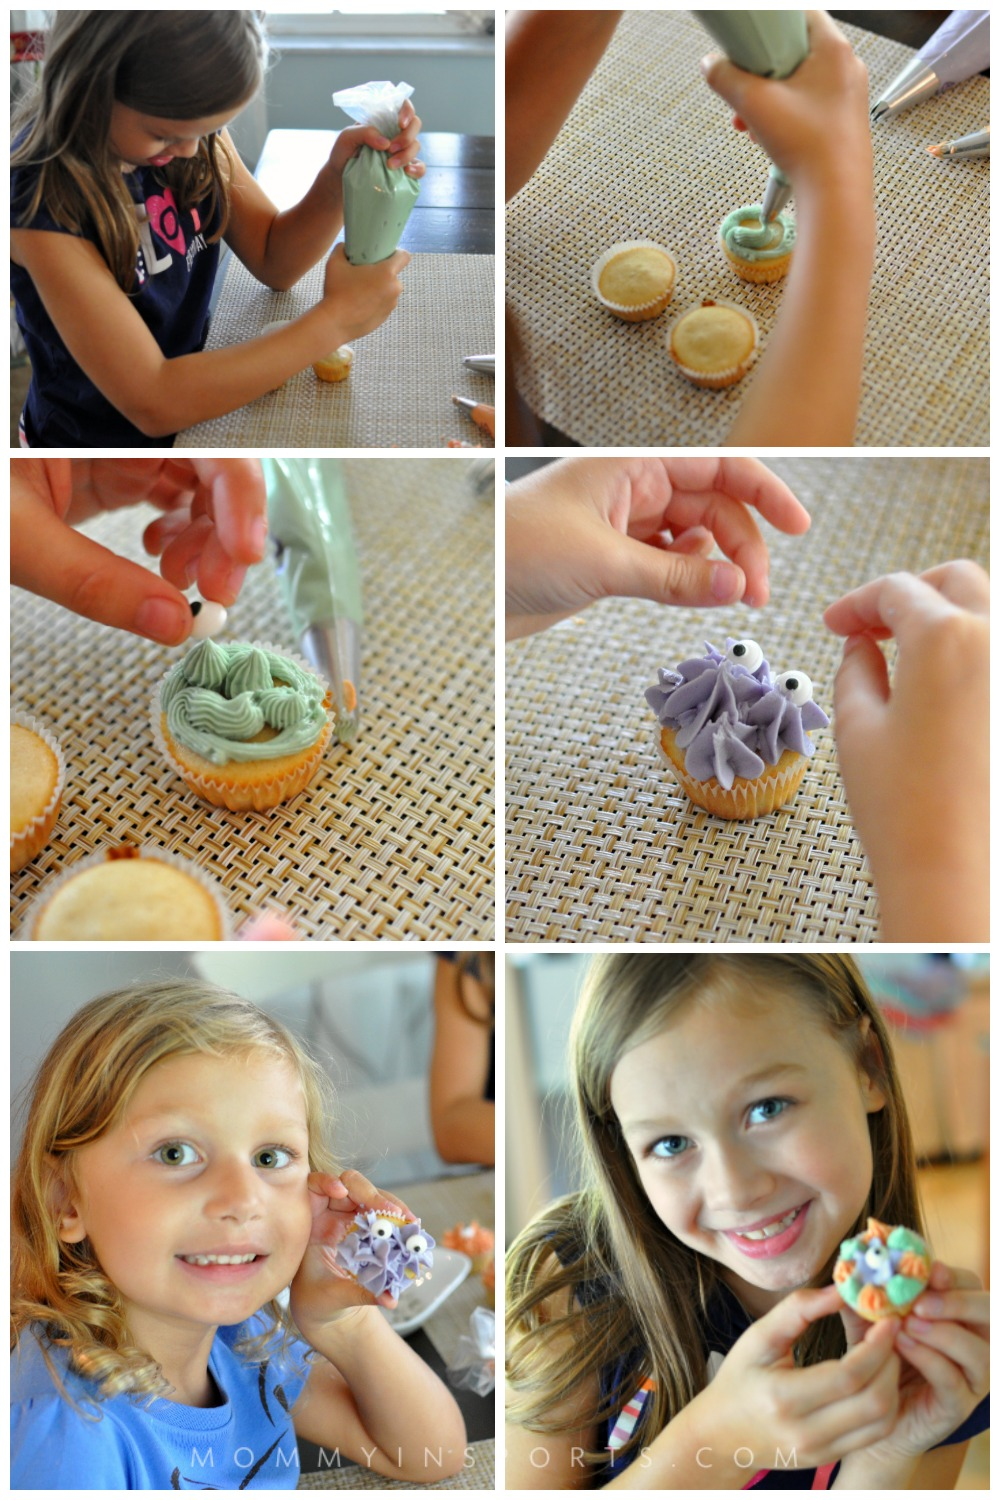 Looking for a scary treat that isn't full of harmful chemicals? Try these natural food dye monster cupcakes, which are so easy to make your kids can do them! There's no wrong way to create a monster!